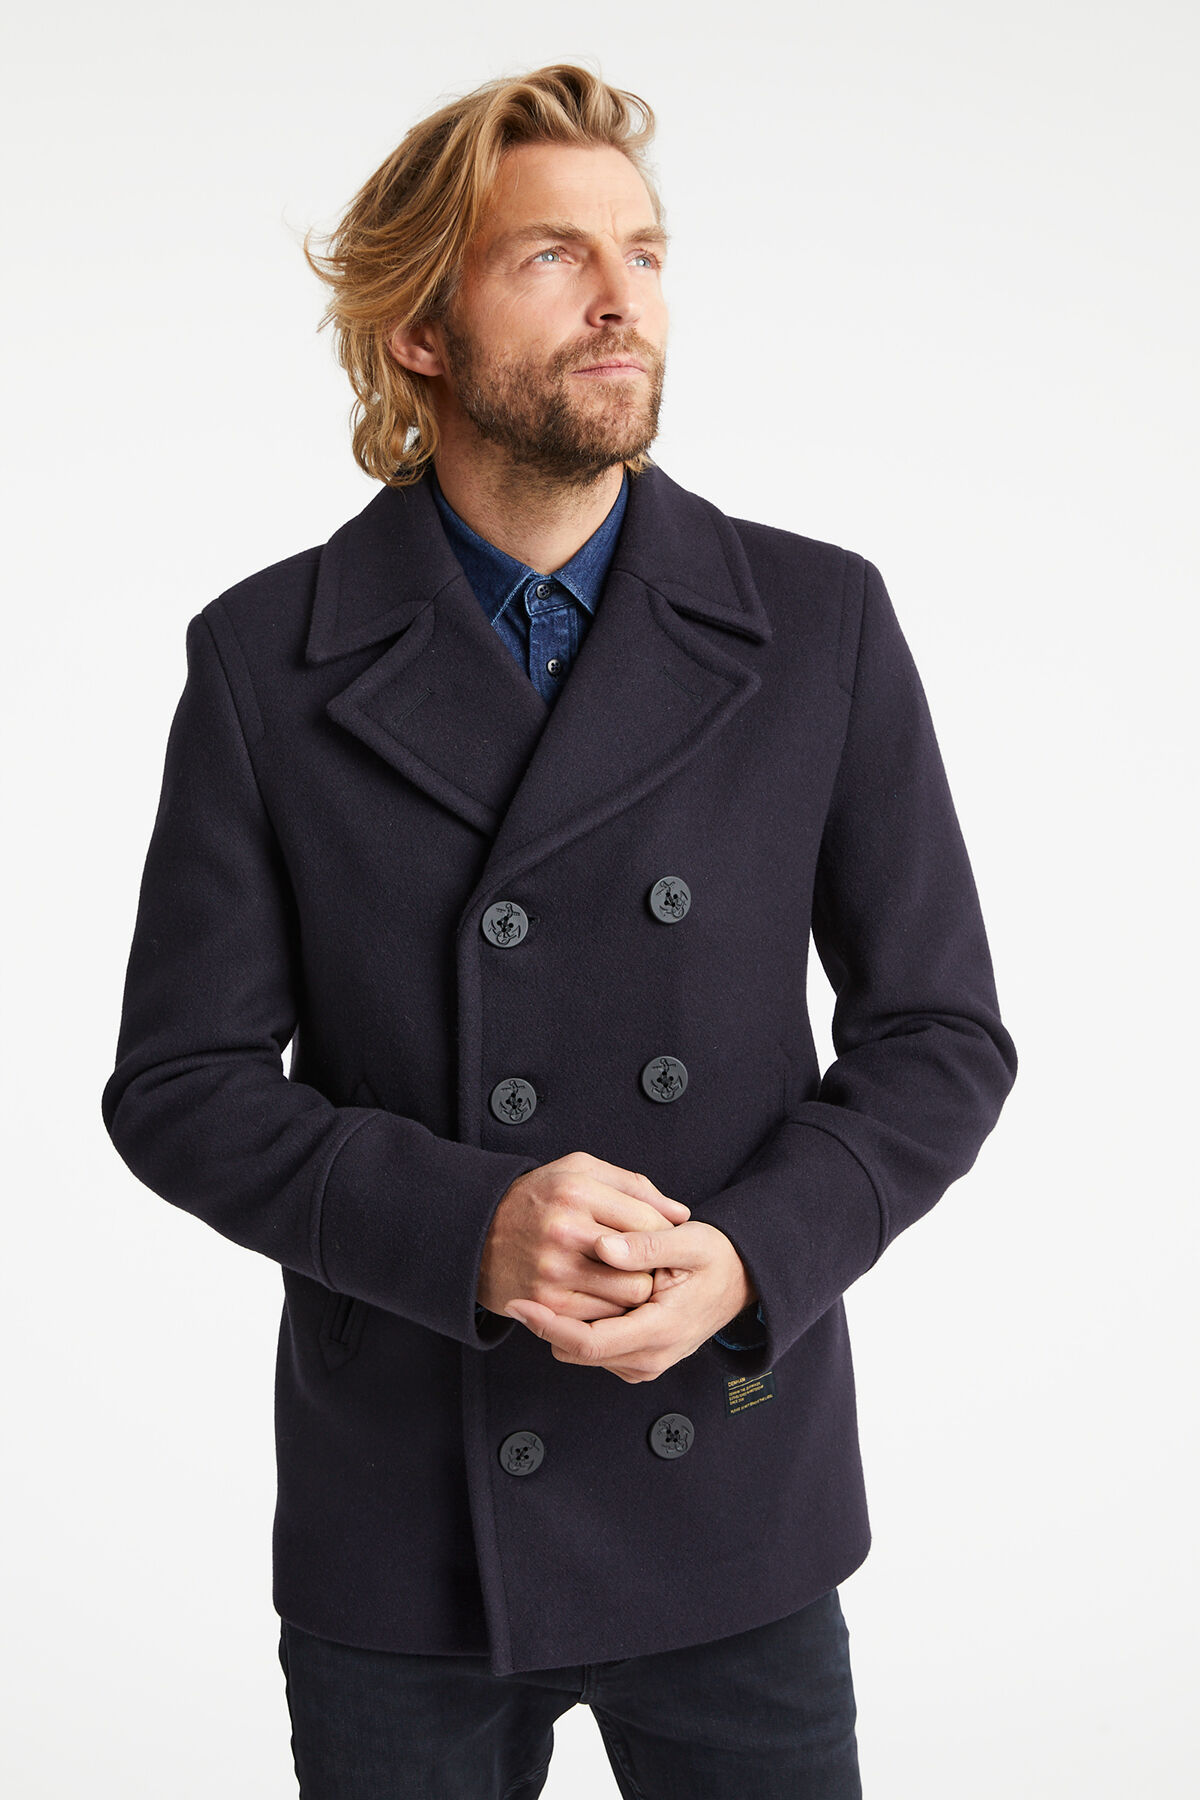 ALFRED COAT Double-breasted Pea coat - Regular Fit